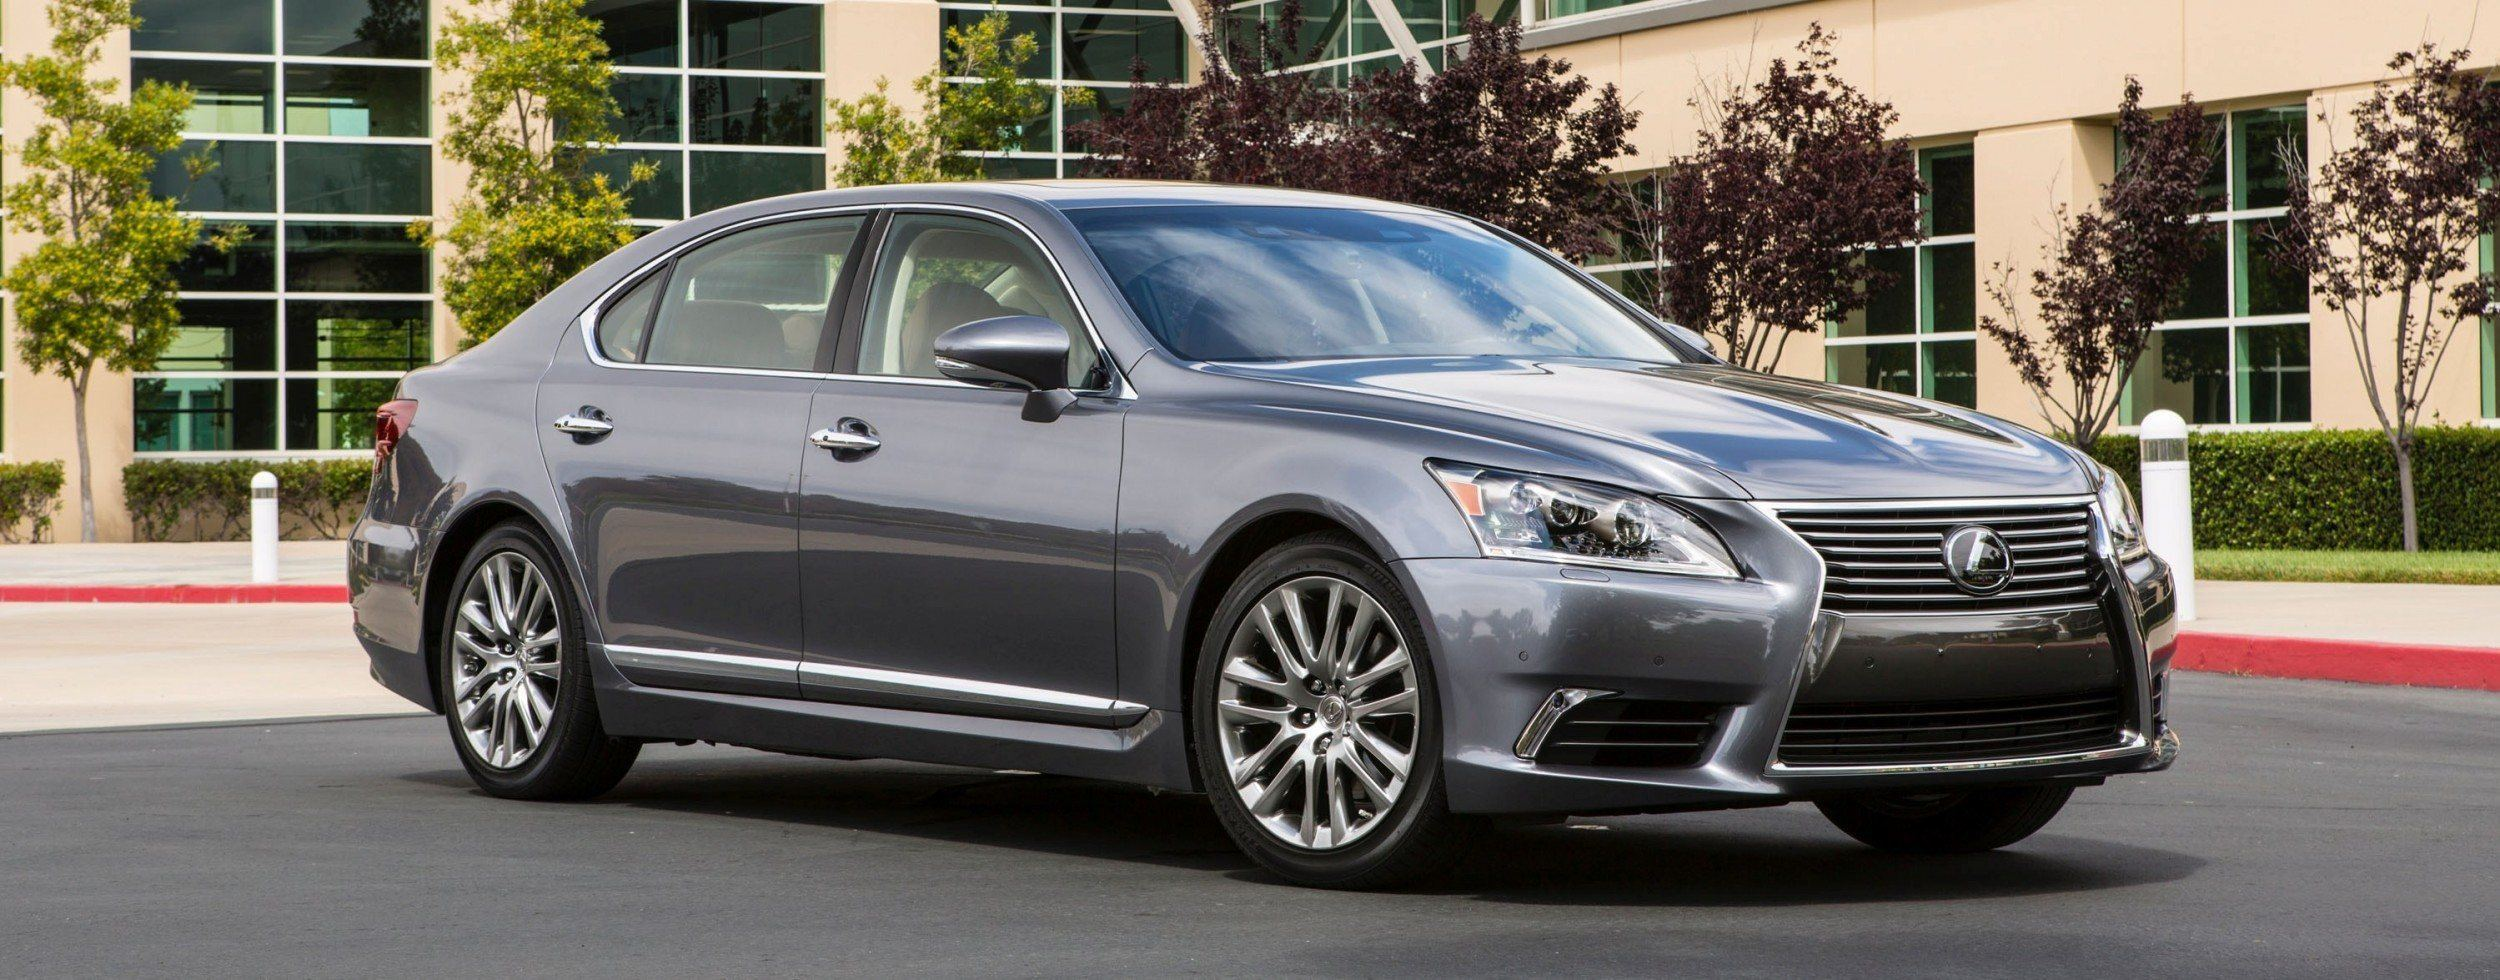 easiest luxury limo 2014 lexus ls460 f sport and awd vs rwd cavallo point. Black Bedroom Furniture Sets. Home Design Ideas